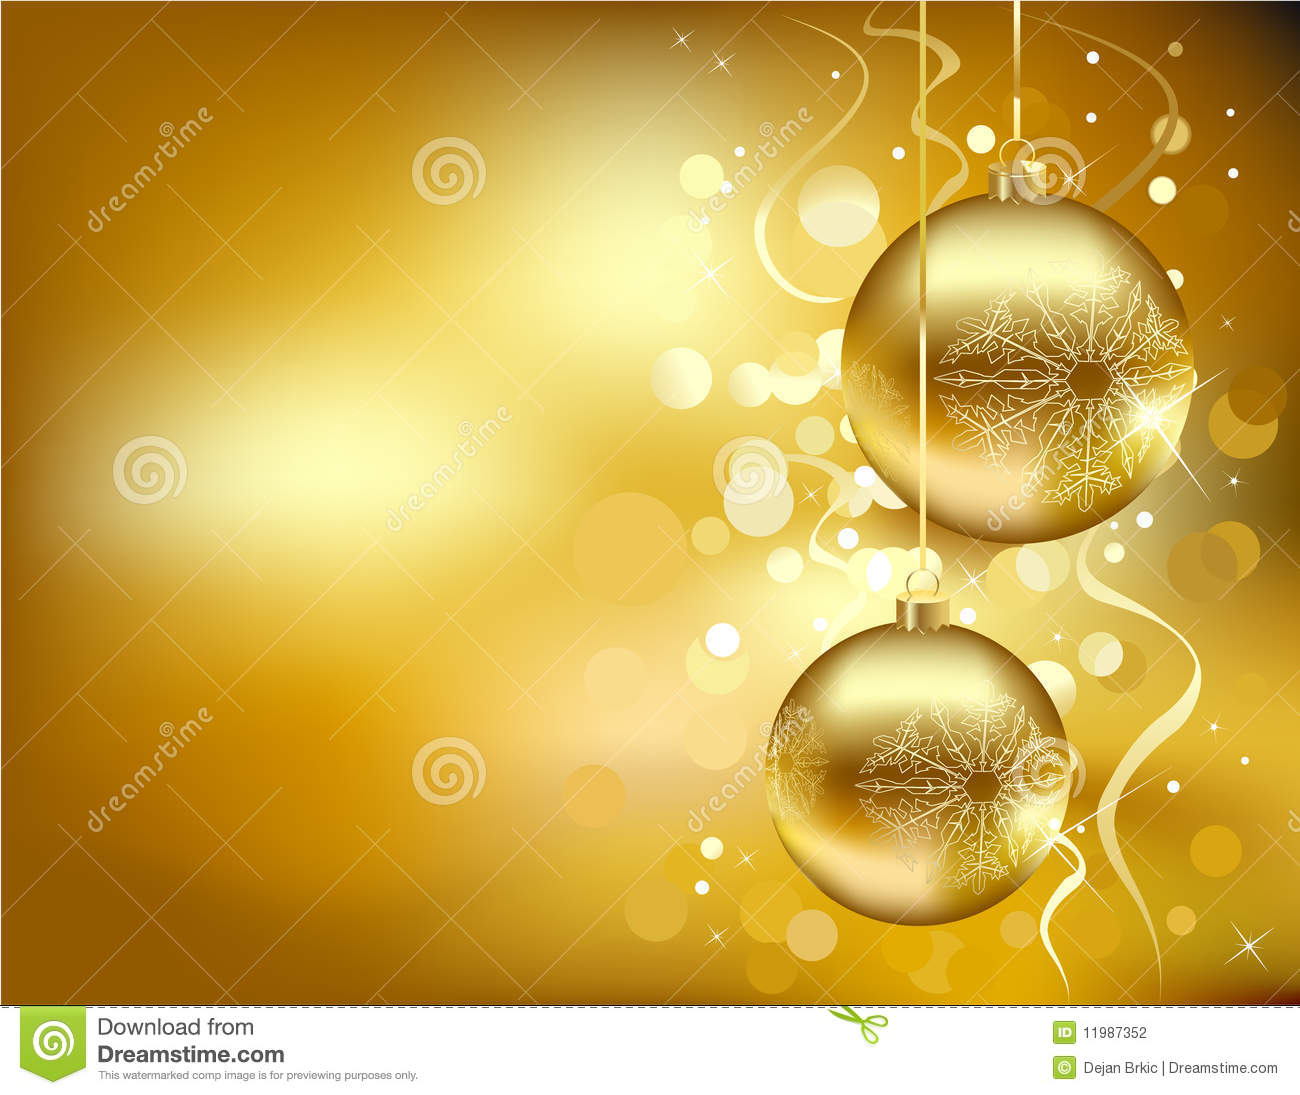 Golden Christmas Decorations Stock Vector Illustration Of Happy Card 11987352